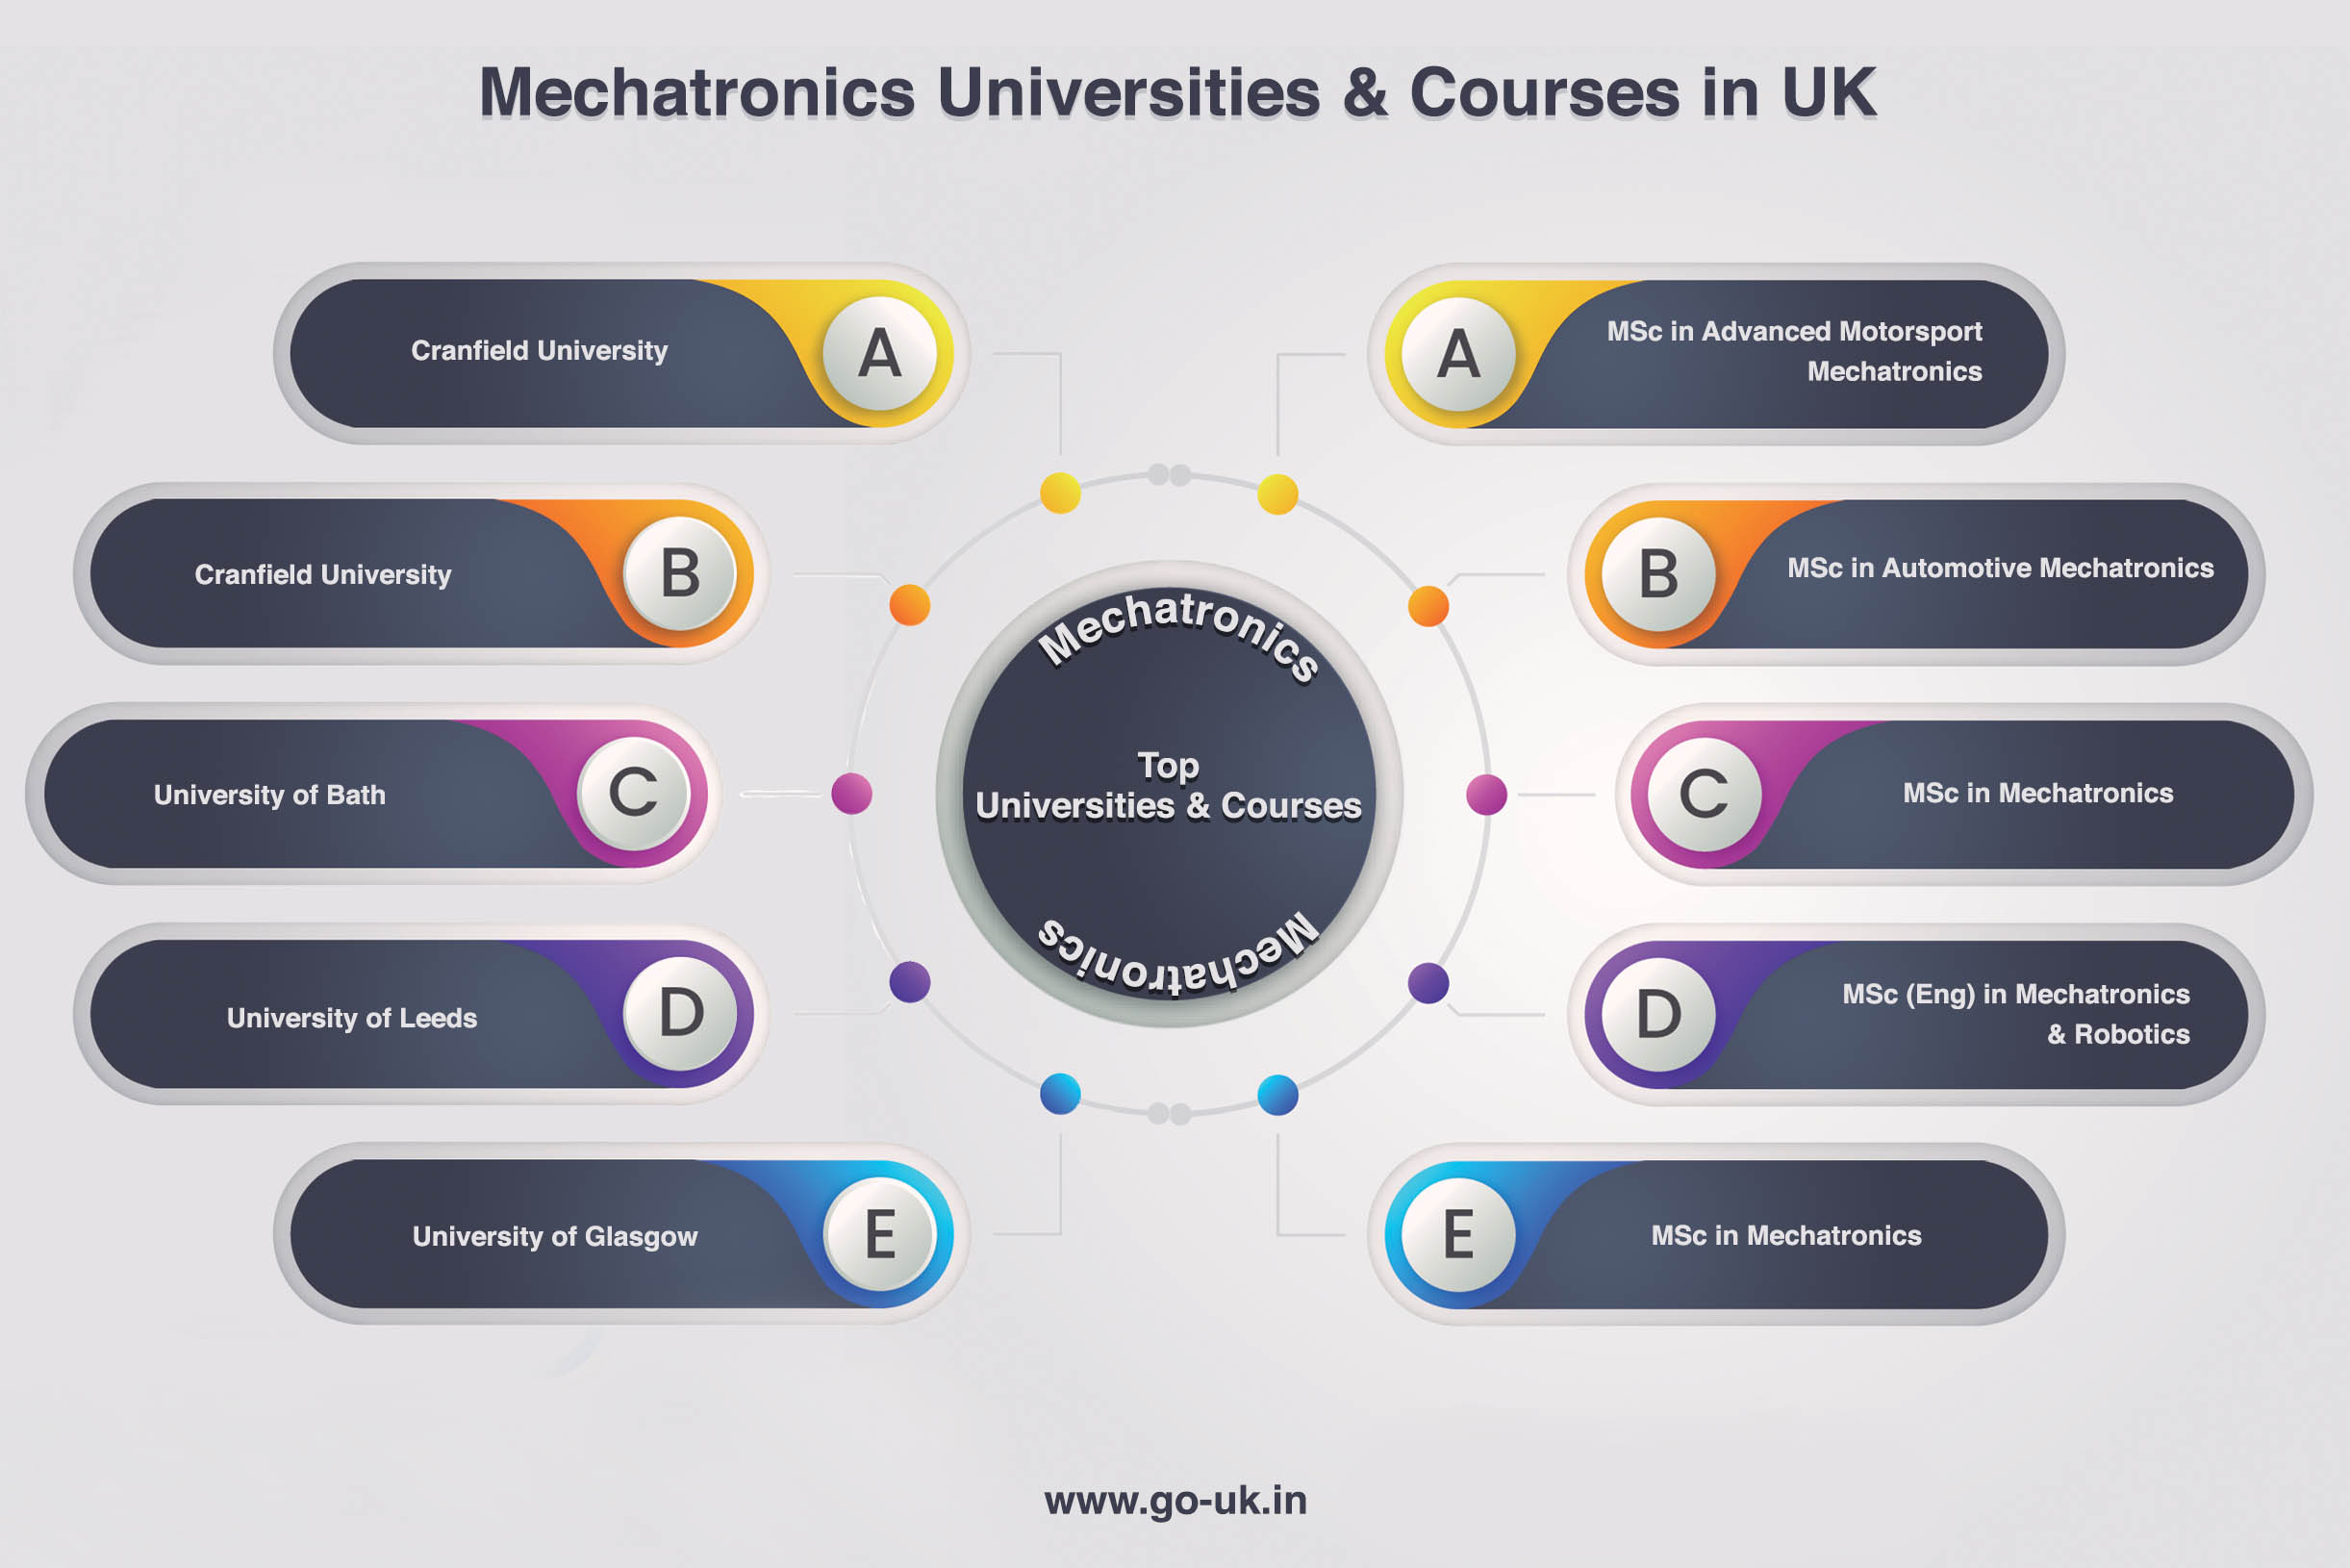 Mechatronics Universities and Courses in UK